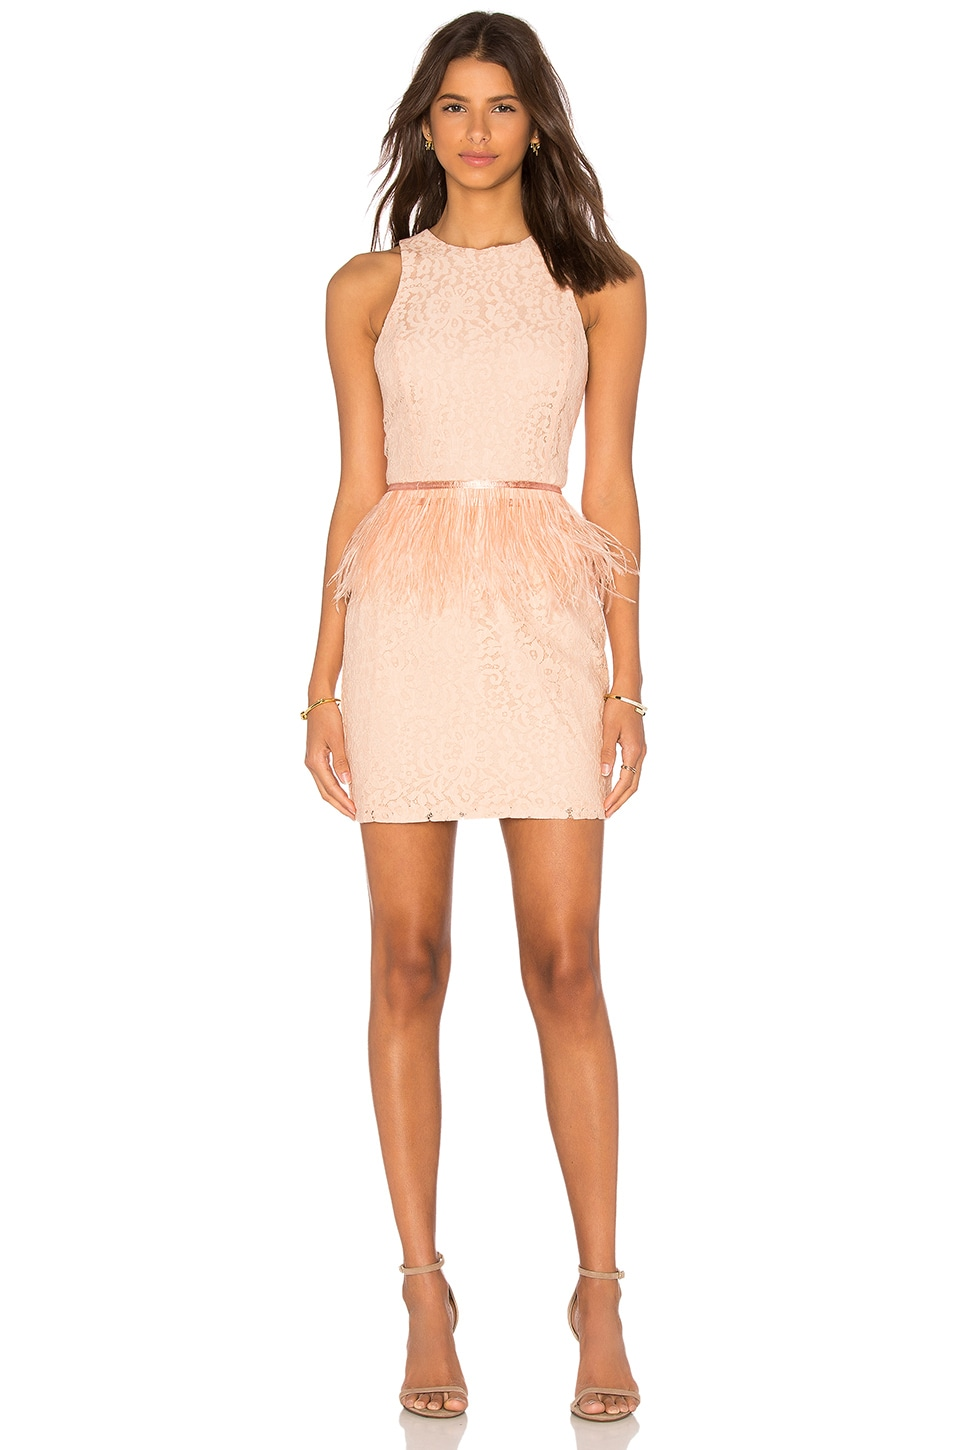 Endless Rose Lace Feather Peplum Dress in Nude Pink